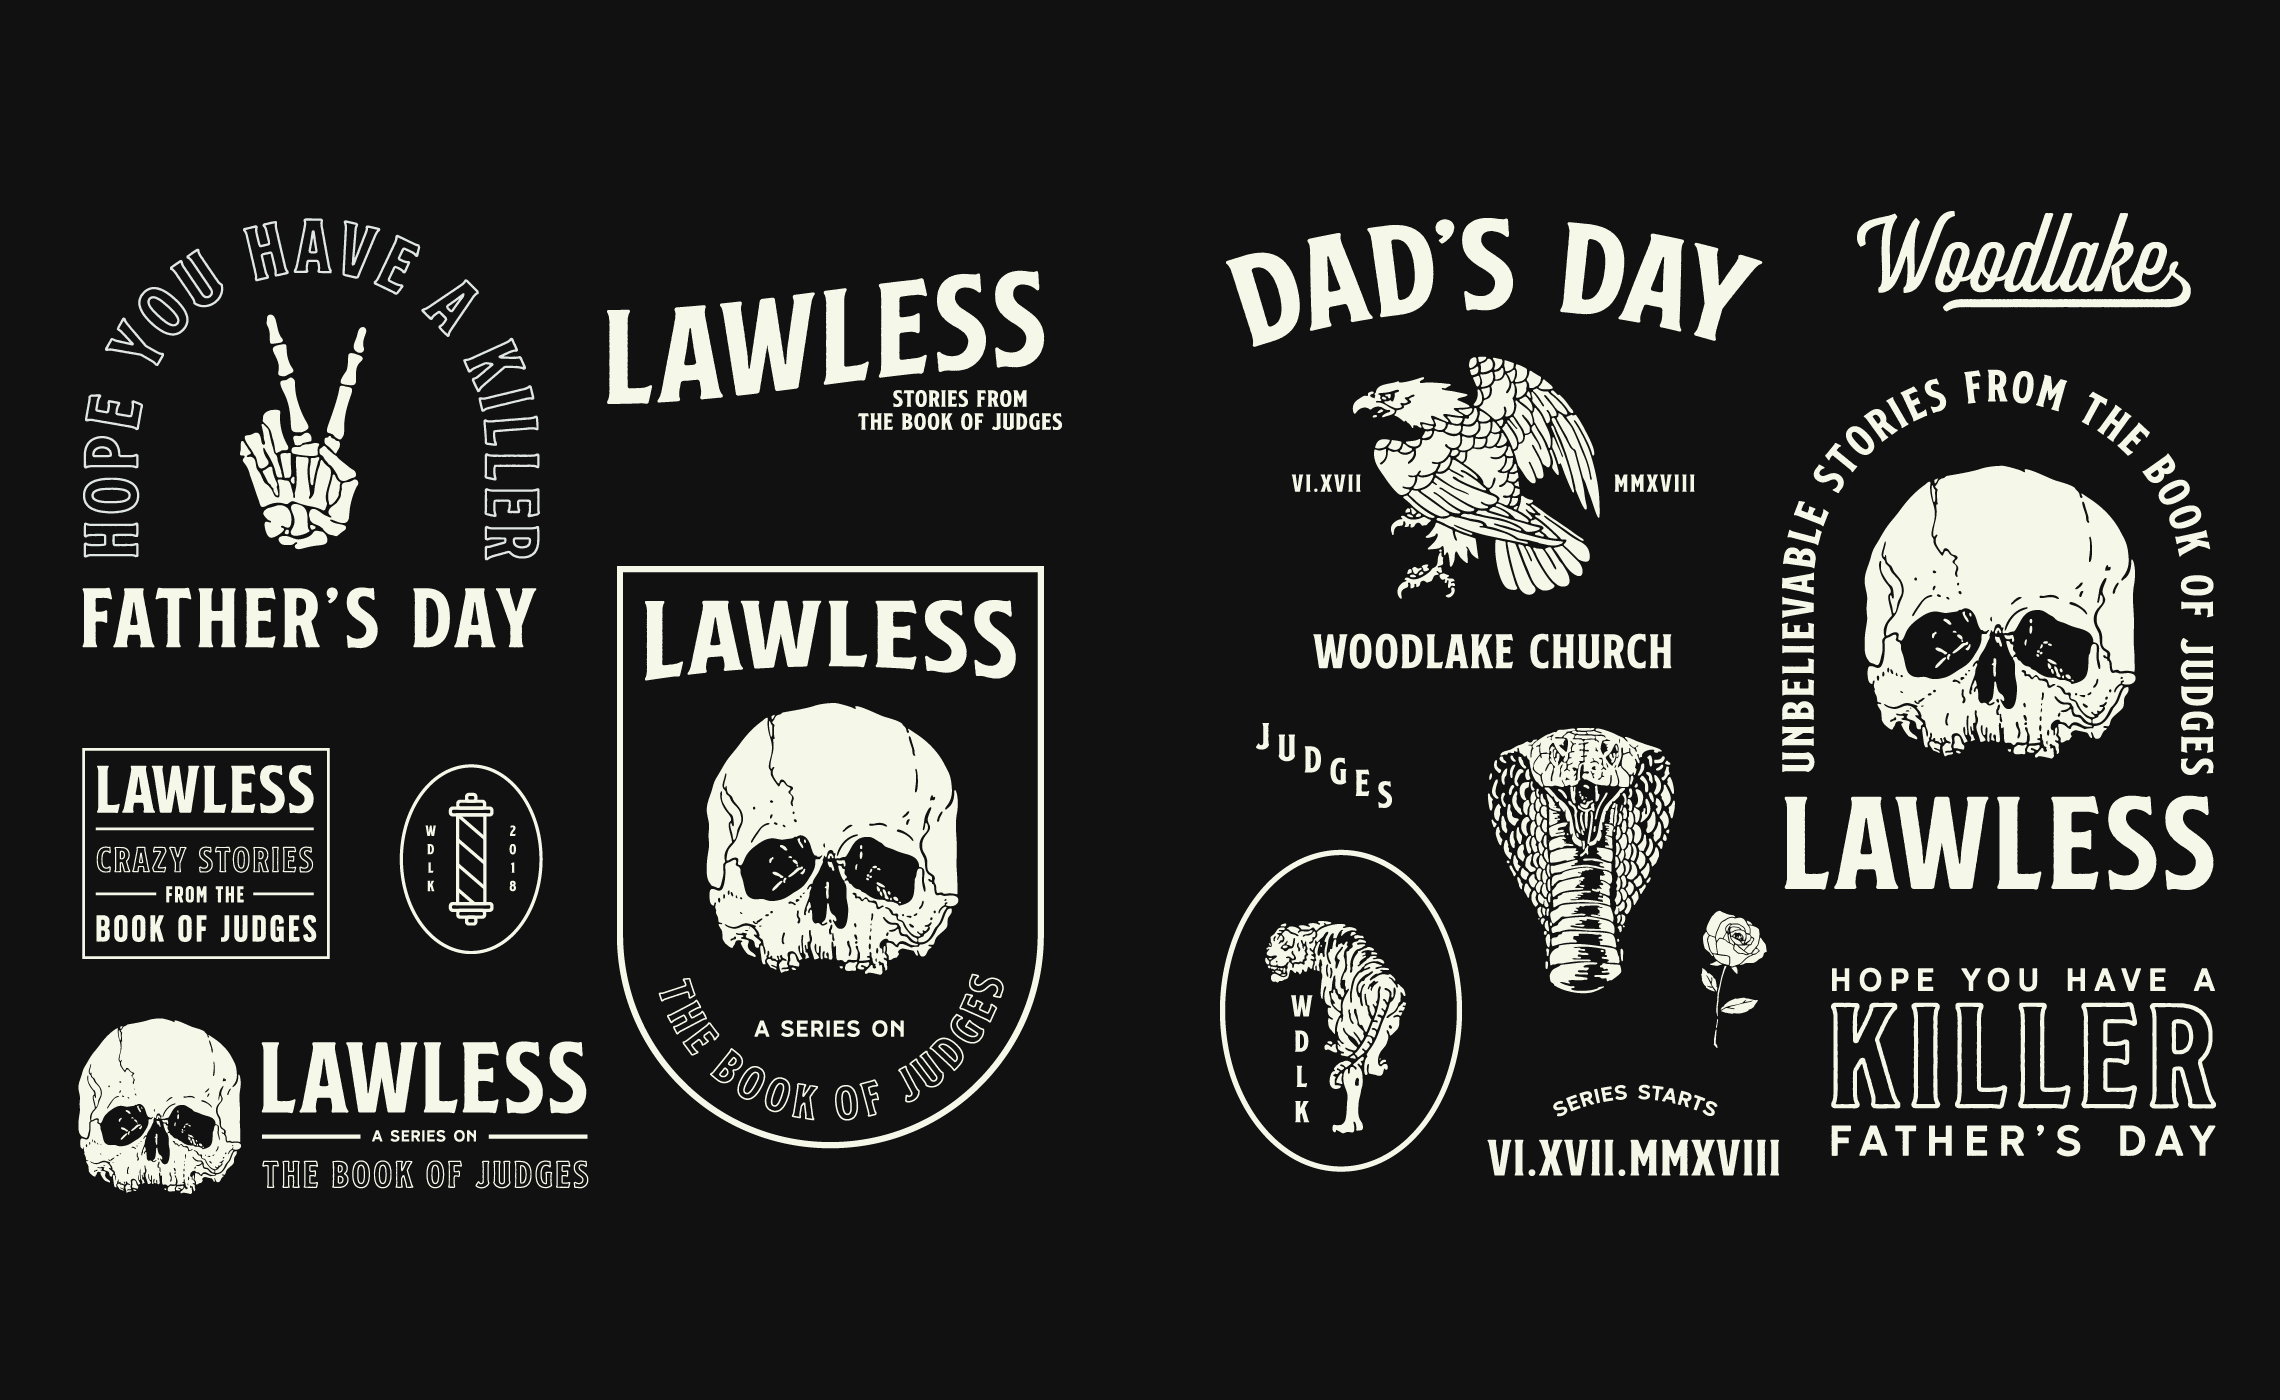 WC_lawless.png